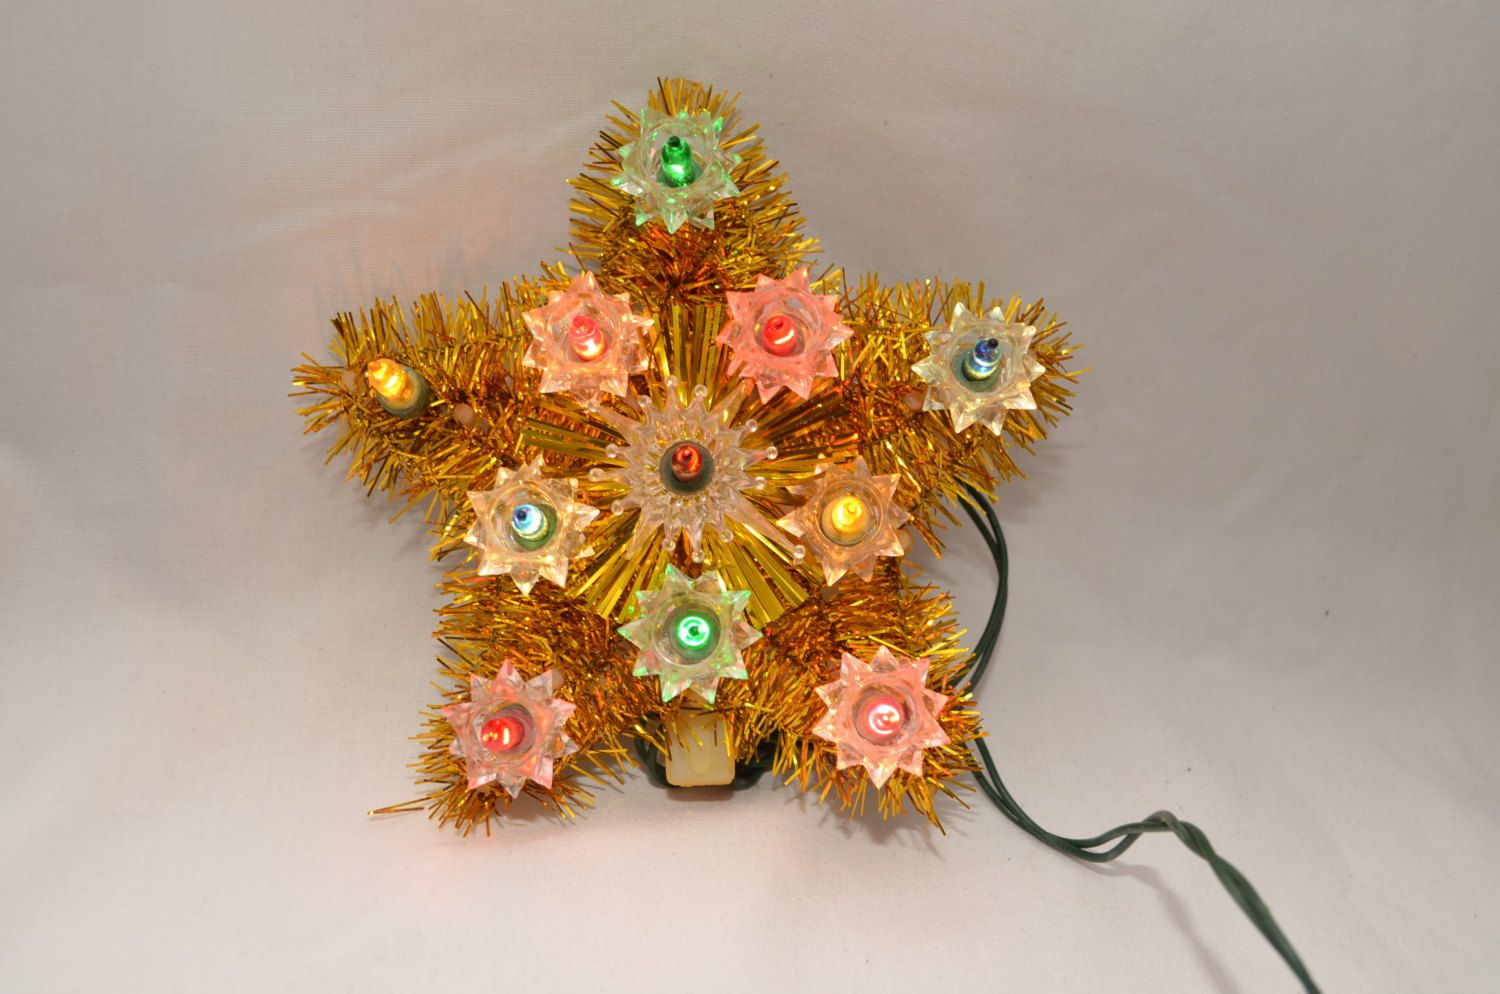 xmas sale! Vintage GOLD STAR Tree Topper with working